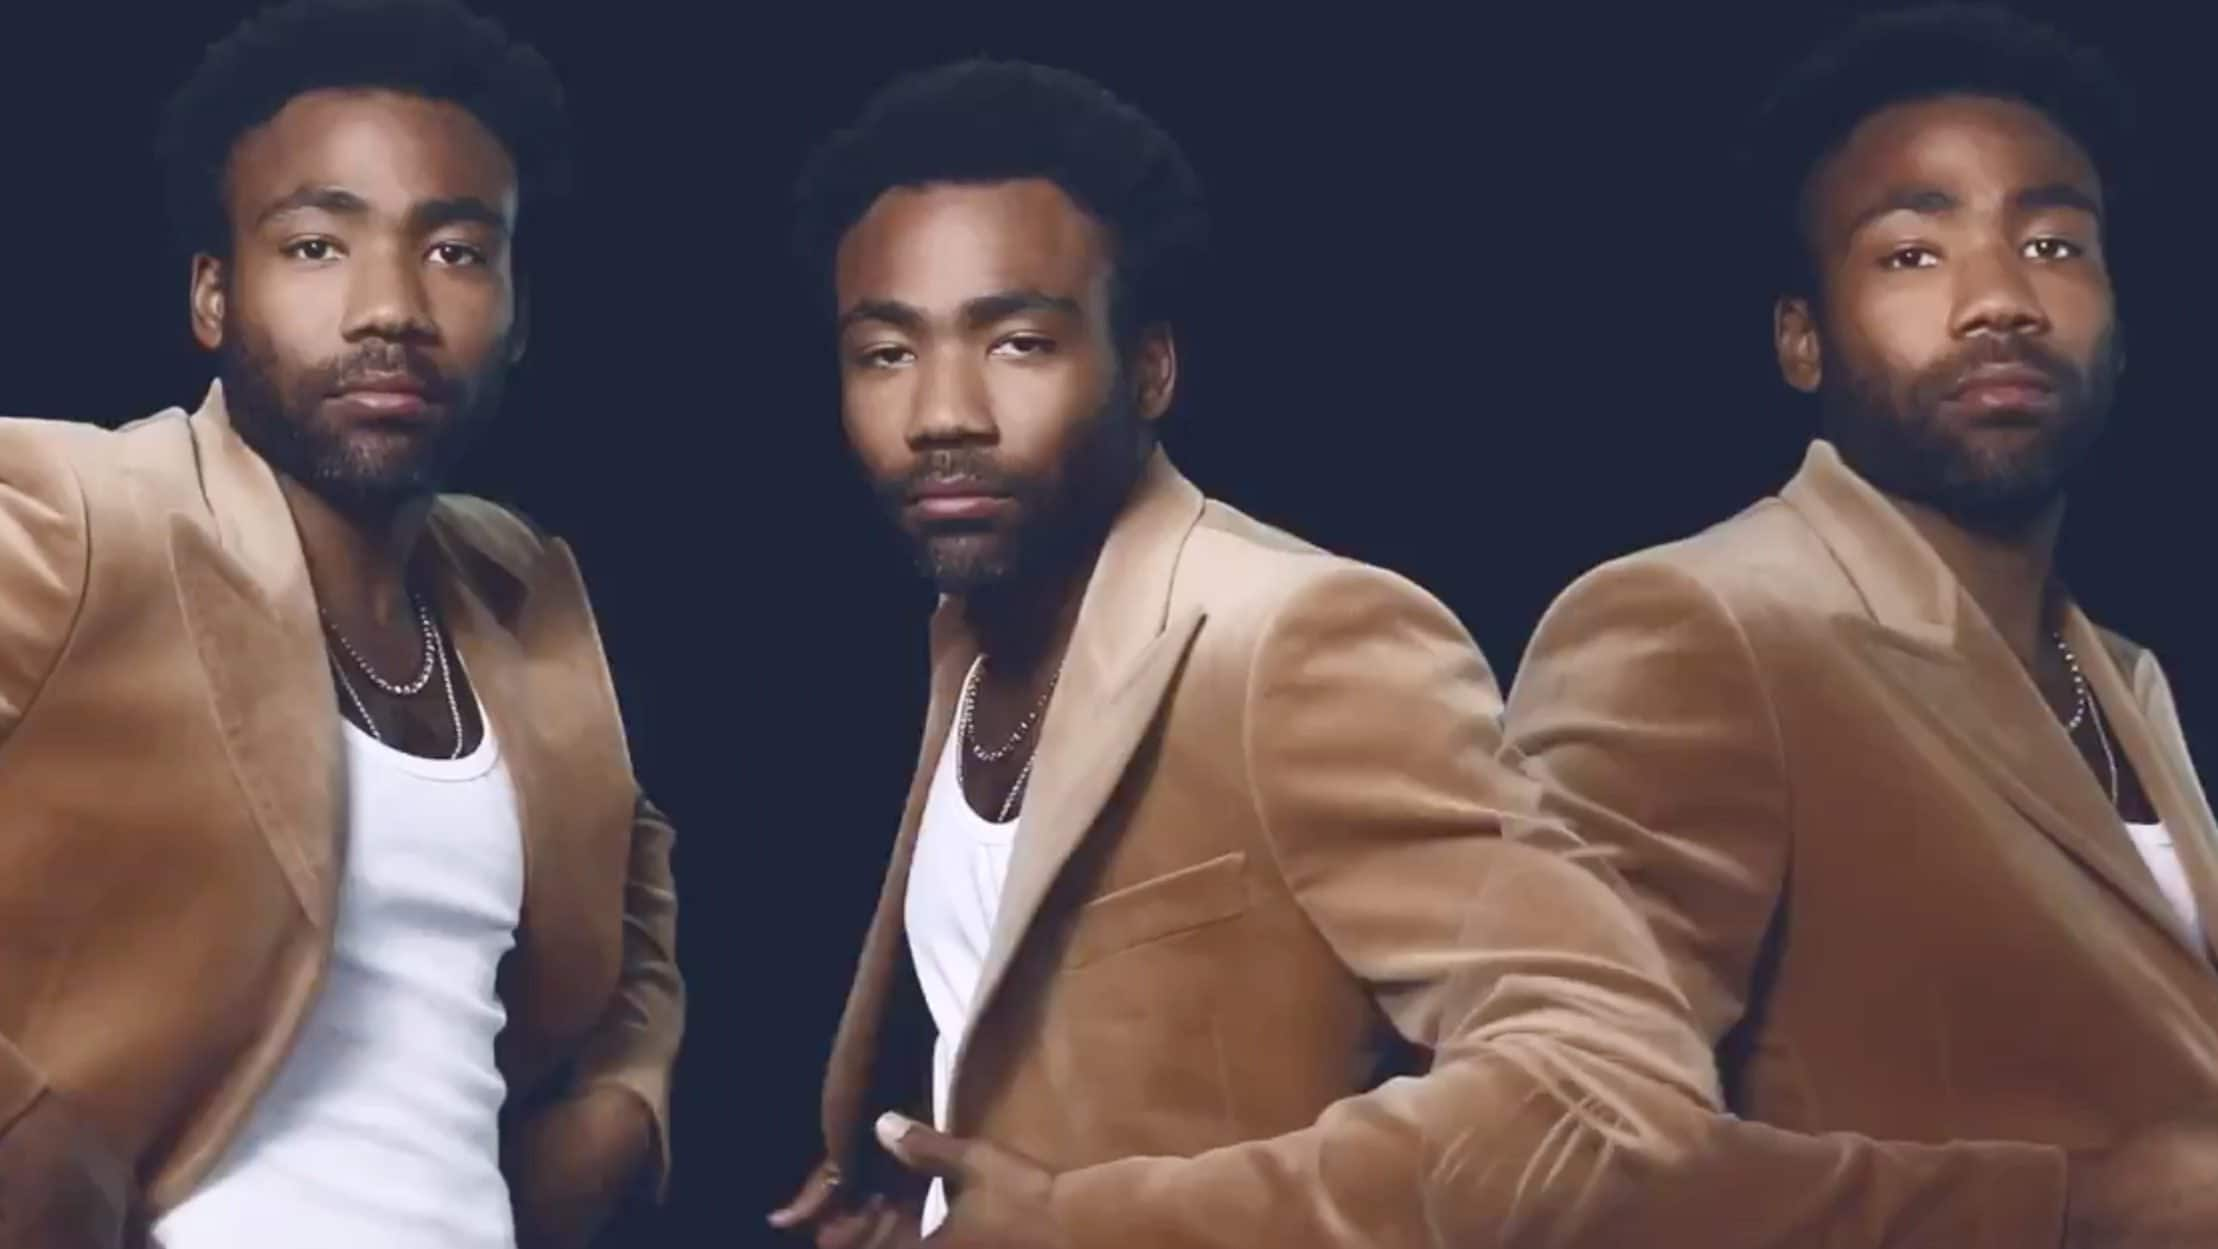 Here Are the Rappers Who Contributed to Childish Gambino's